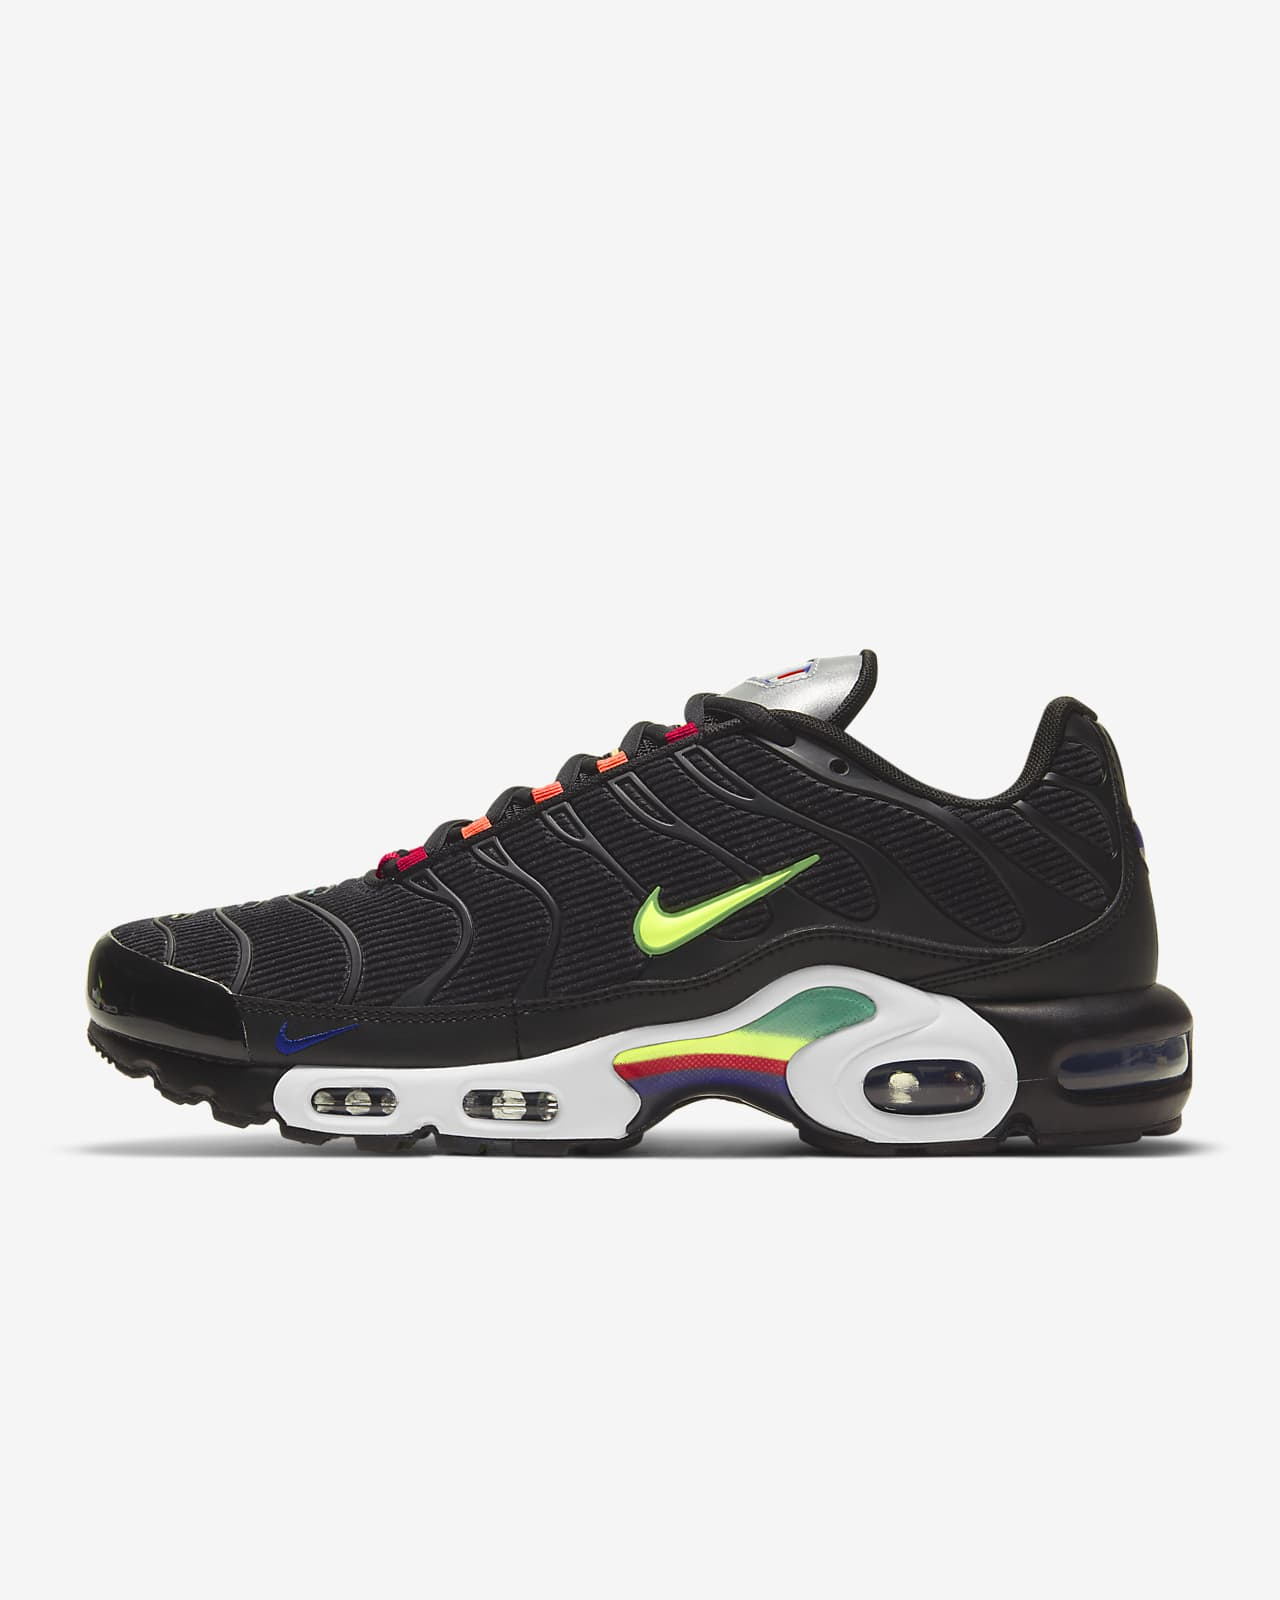 Nike Air Max Plus EOI Men's Shoe